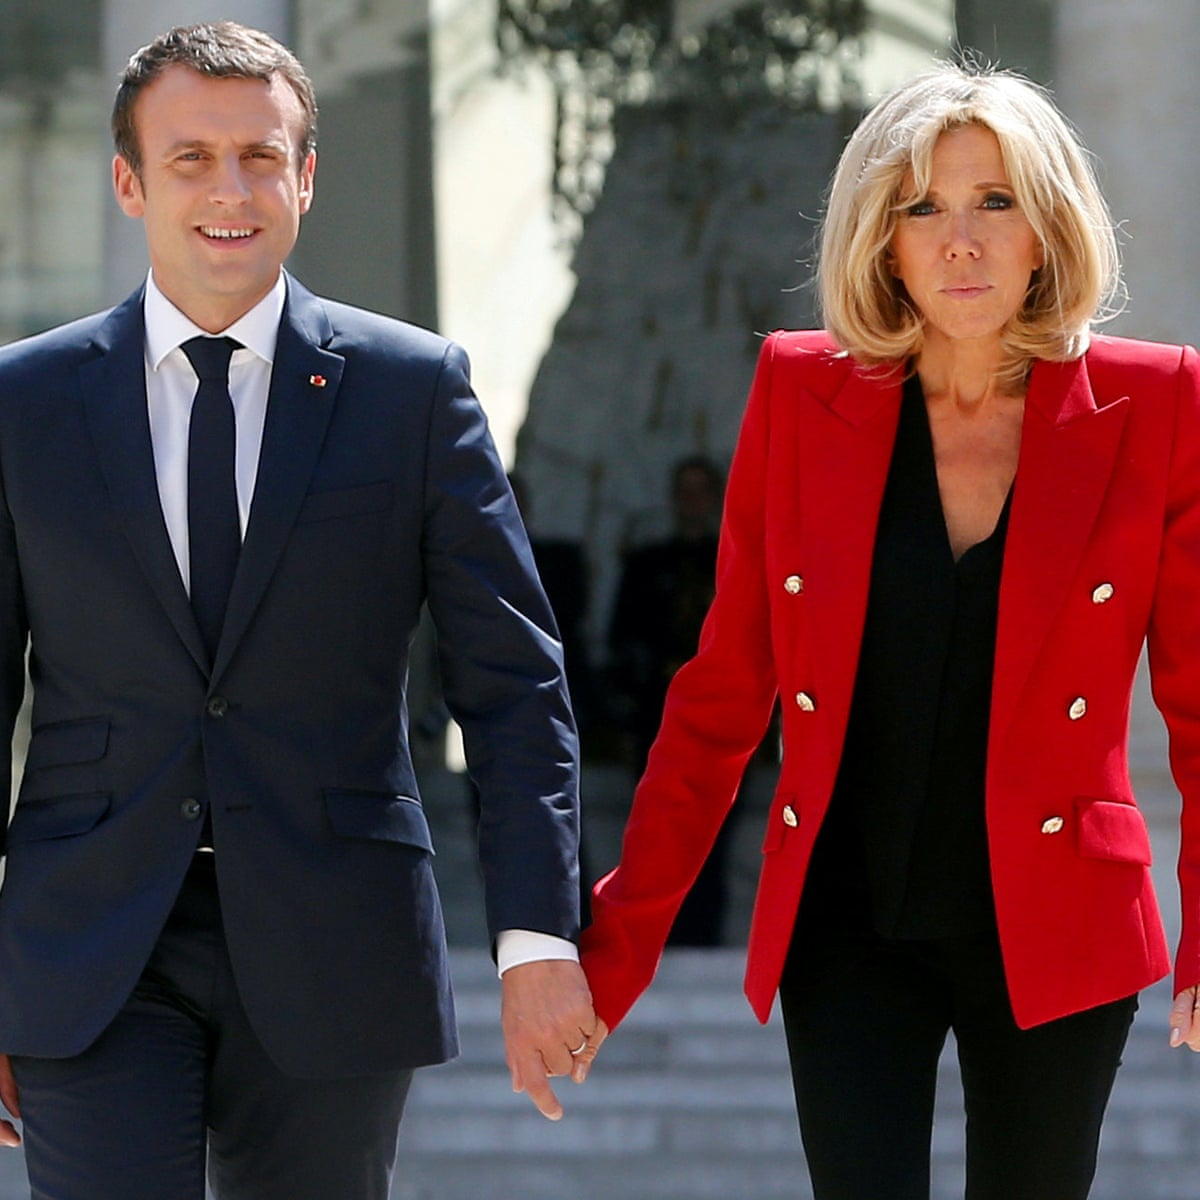 No First Lady Title For Brigitte Macron After Petition Over Her Status Brigitte Macron The Guardian